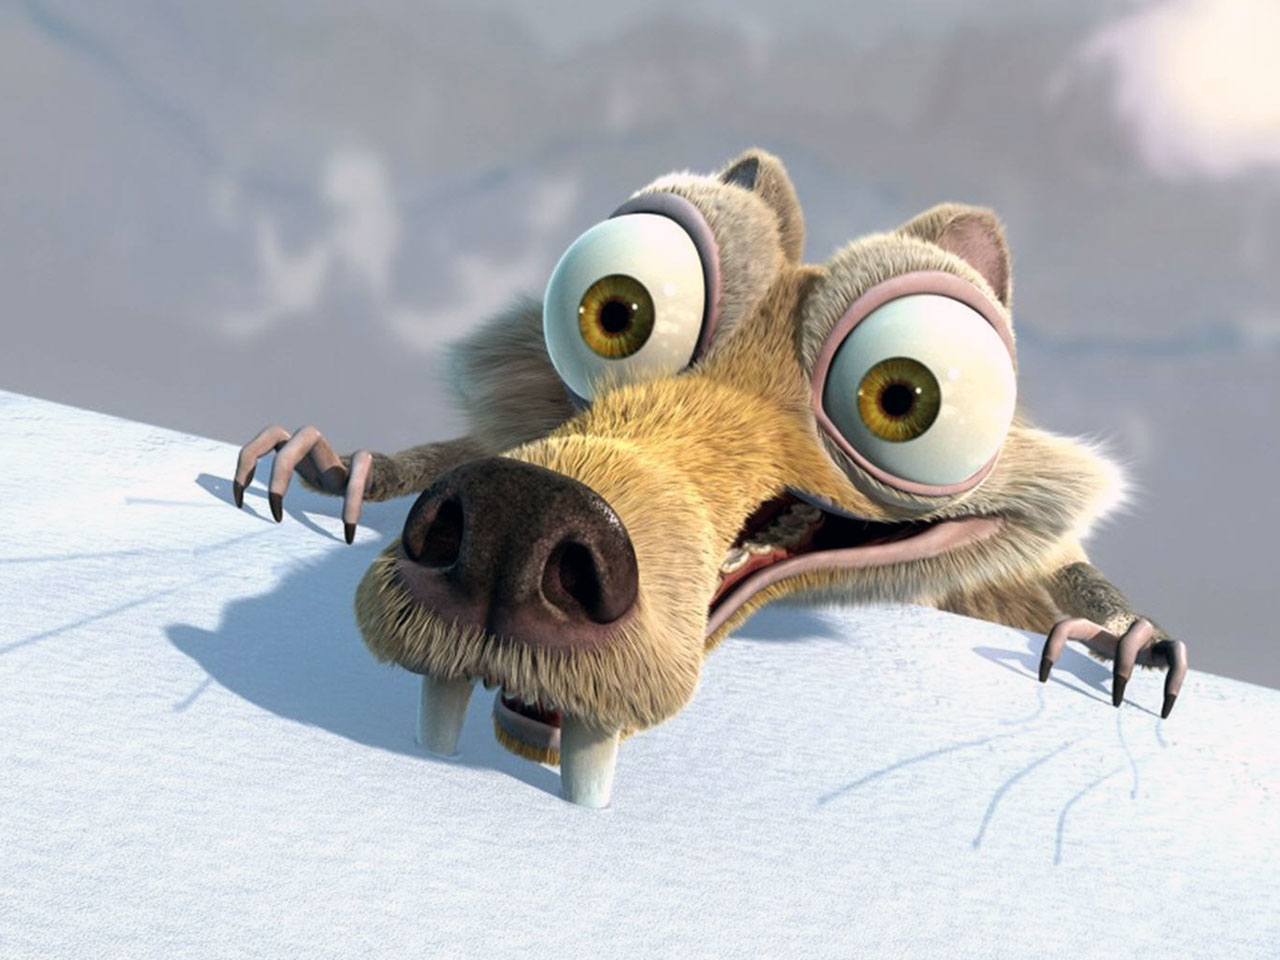 ice-age-scrat-wallpaper-1280_929